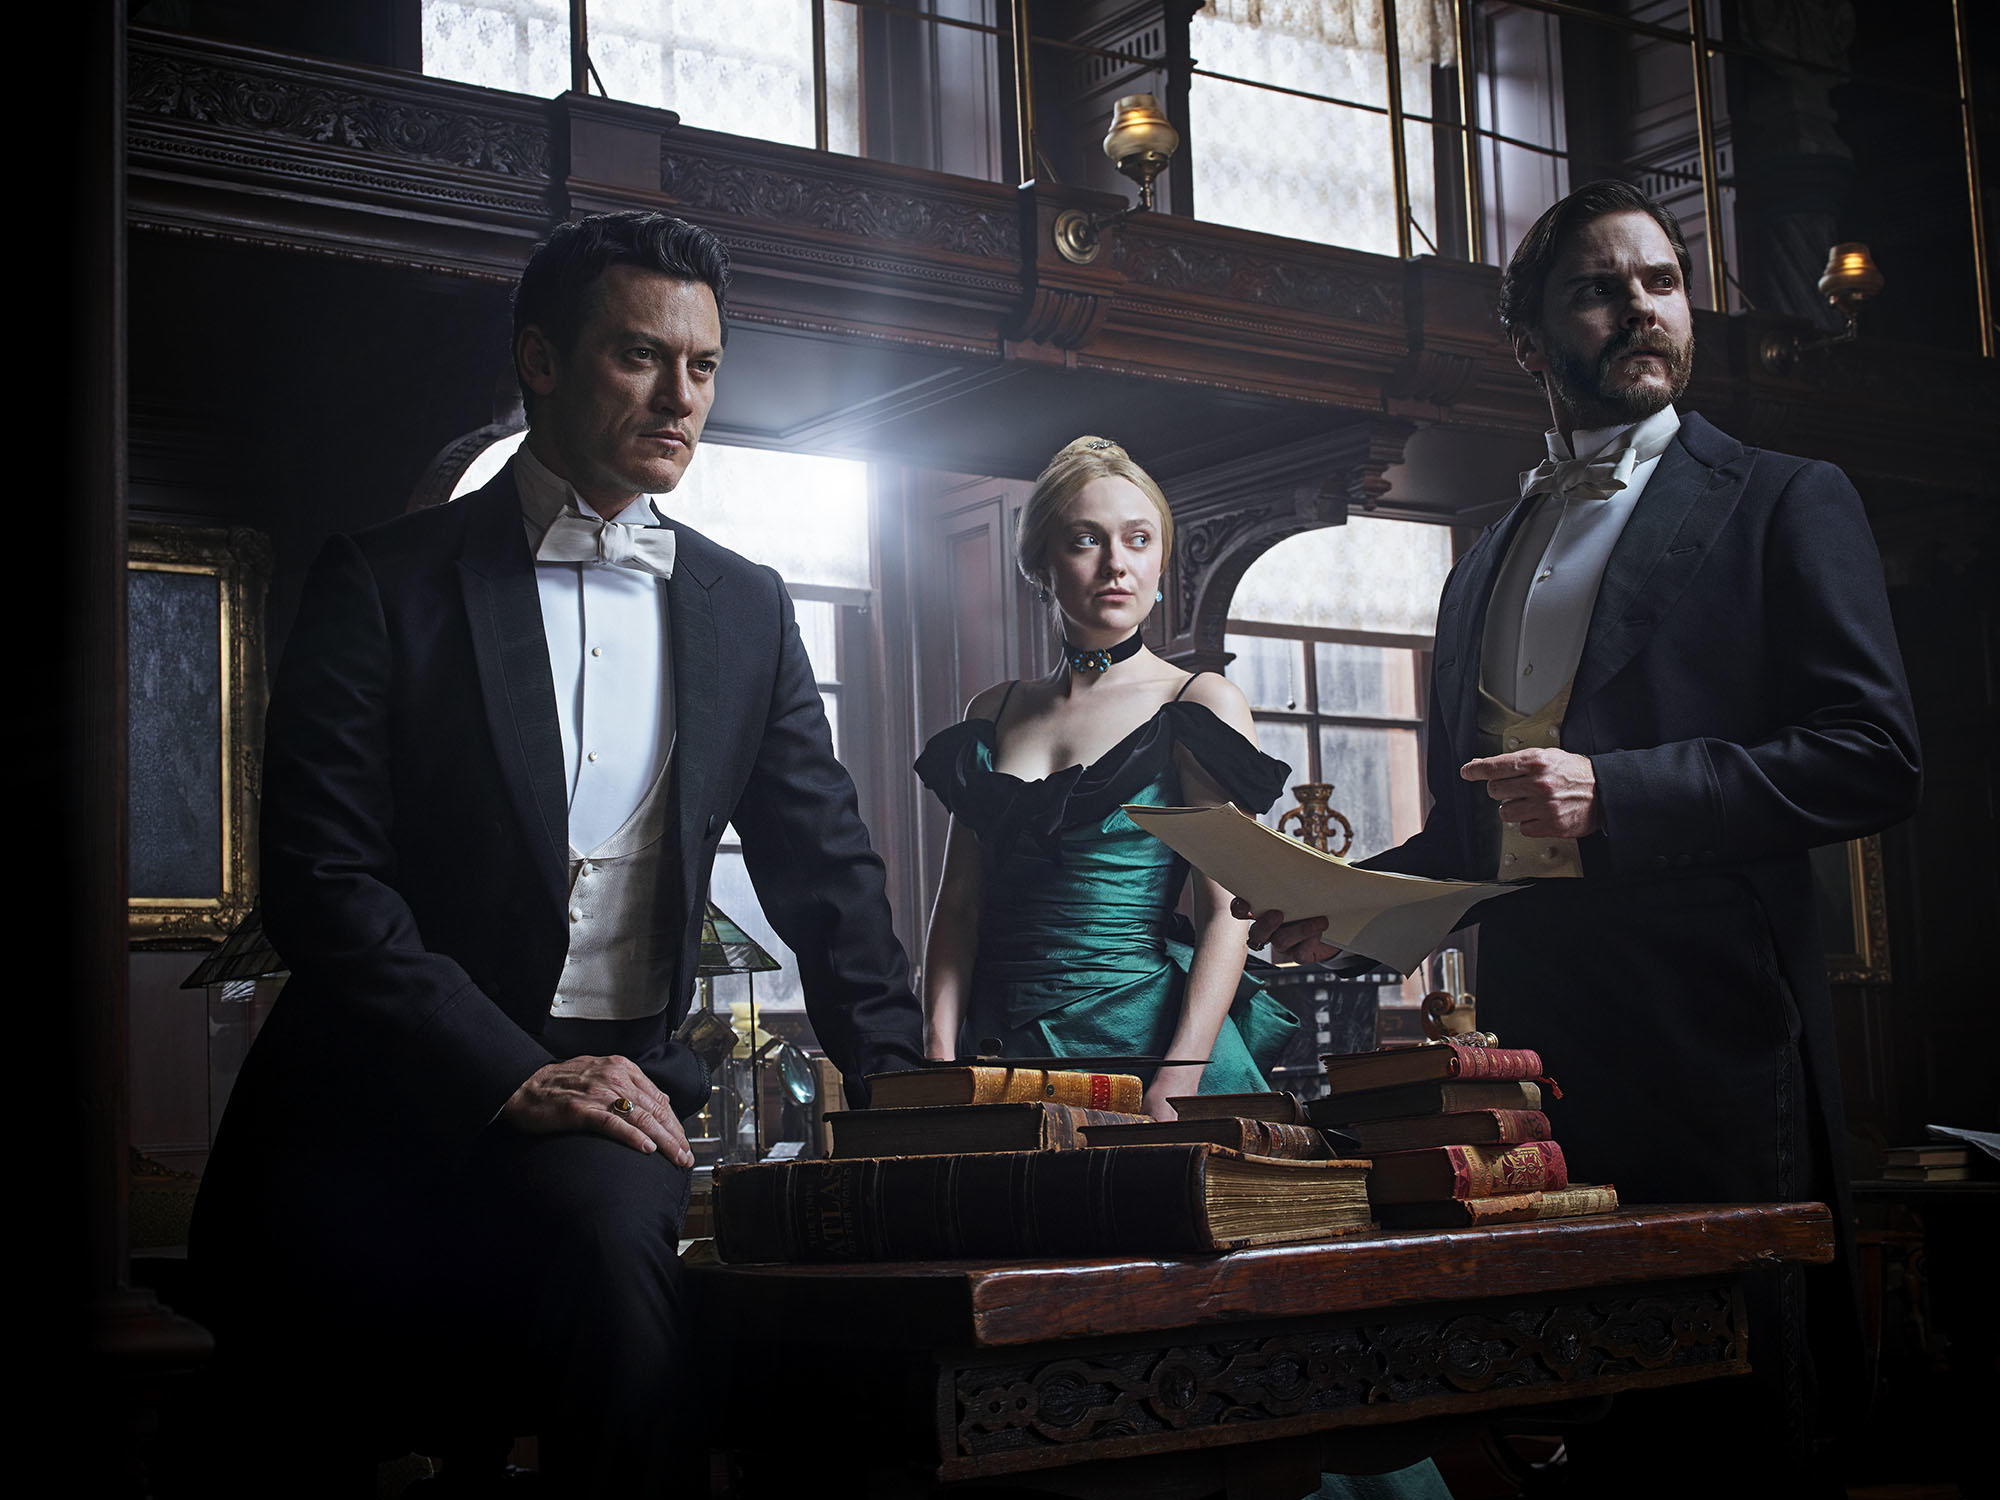 Alienist-Promo-Still-16-The-Main-Investigators.jpg